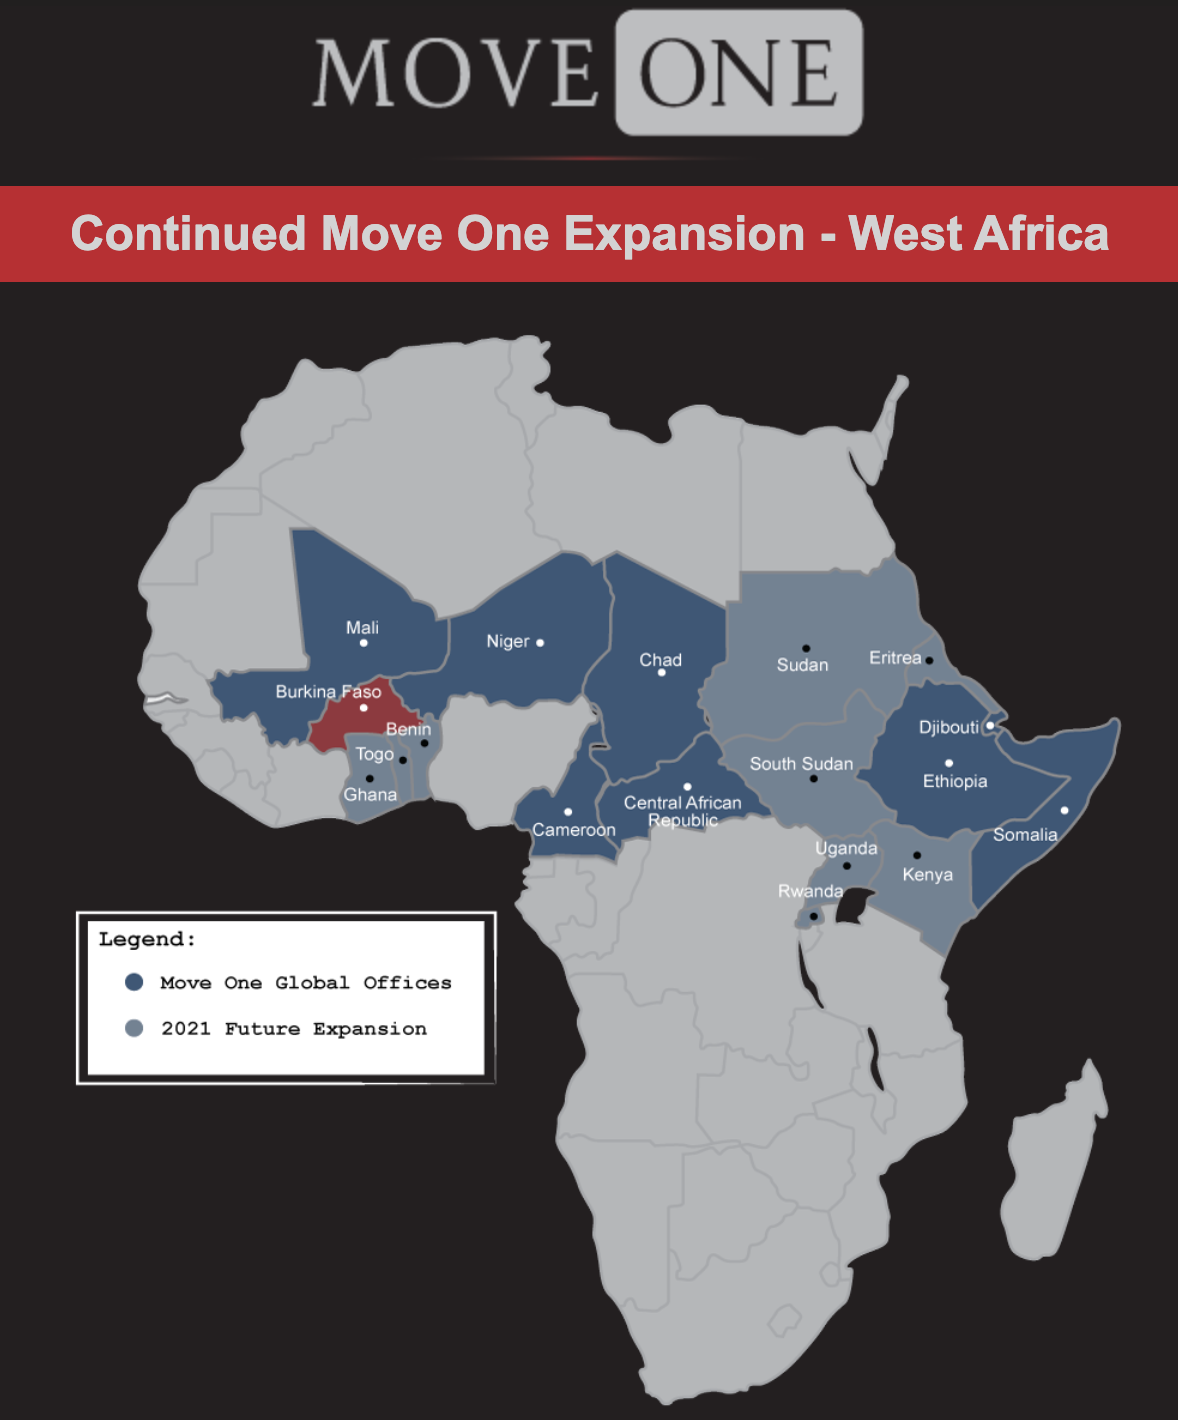 Move One West Africa Burkina Faso